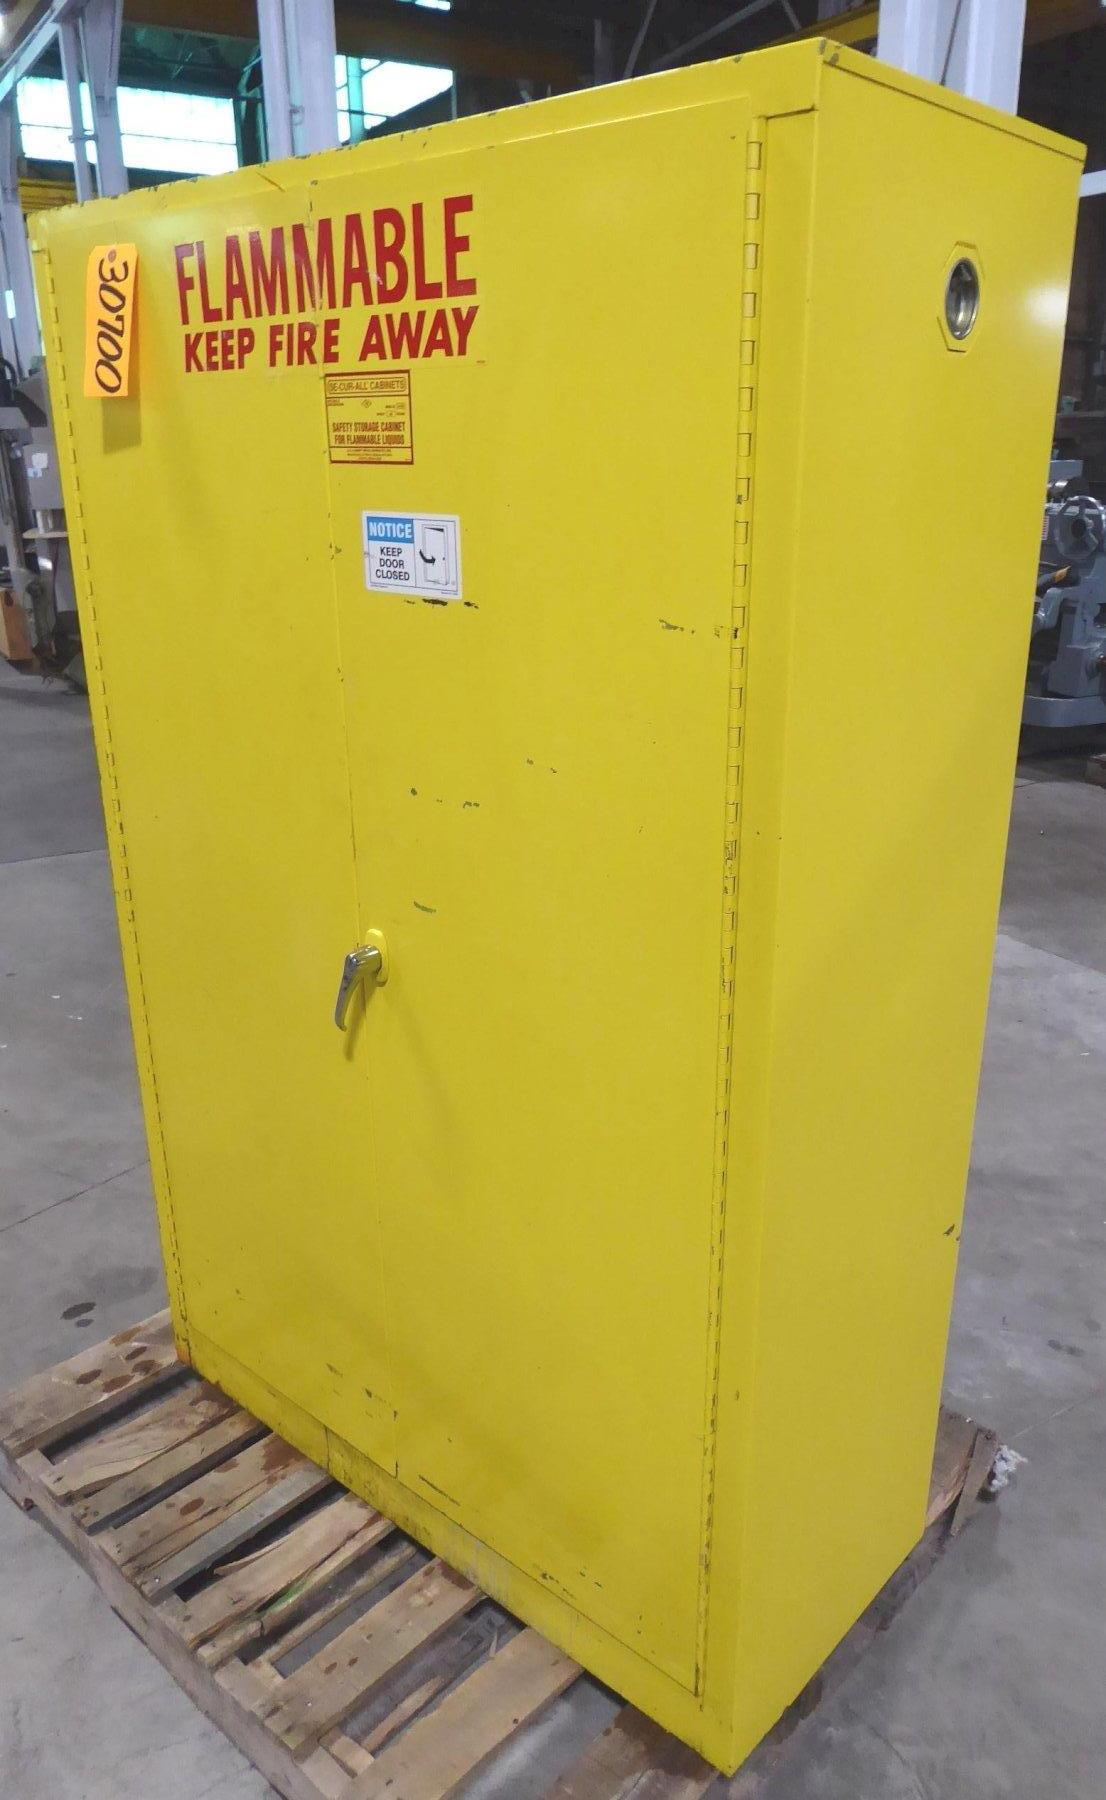 SE-CUR-ALL Flammable Materials Safety Storage Cabinet, Capacity: 45 Gallons